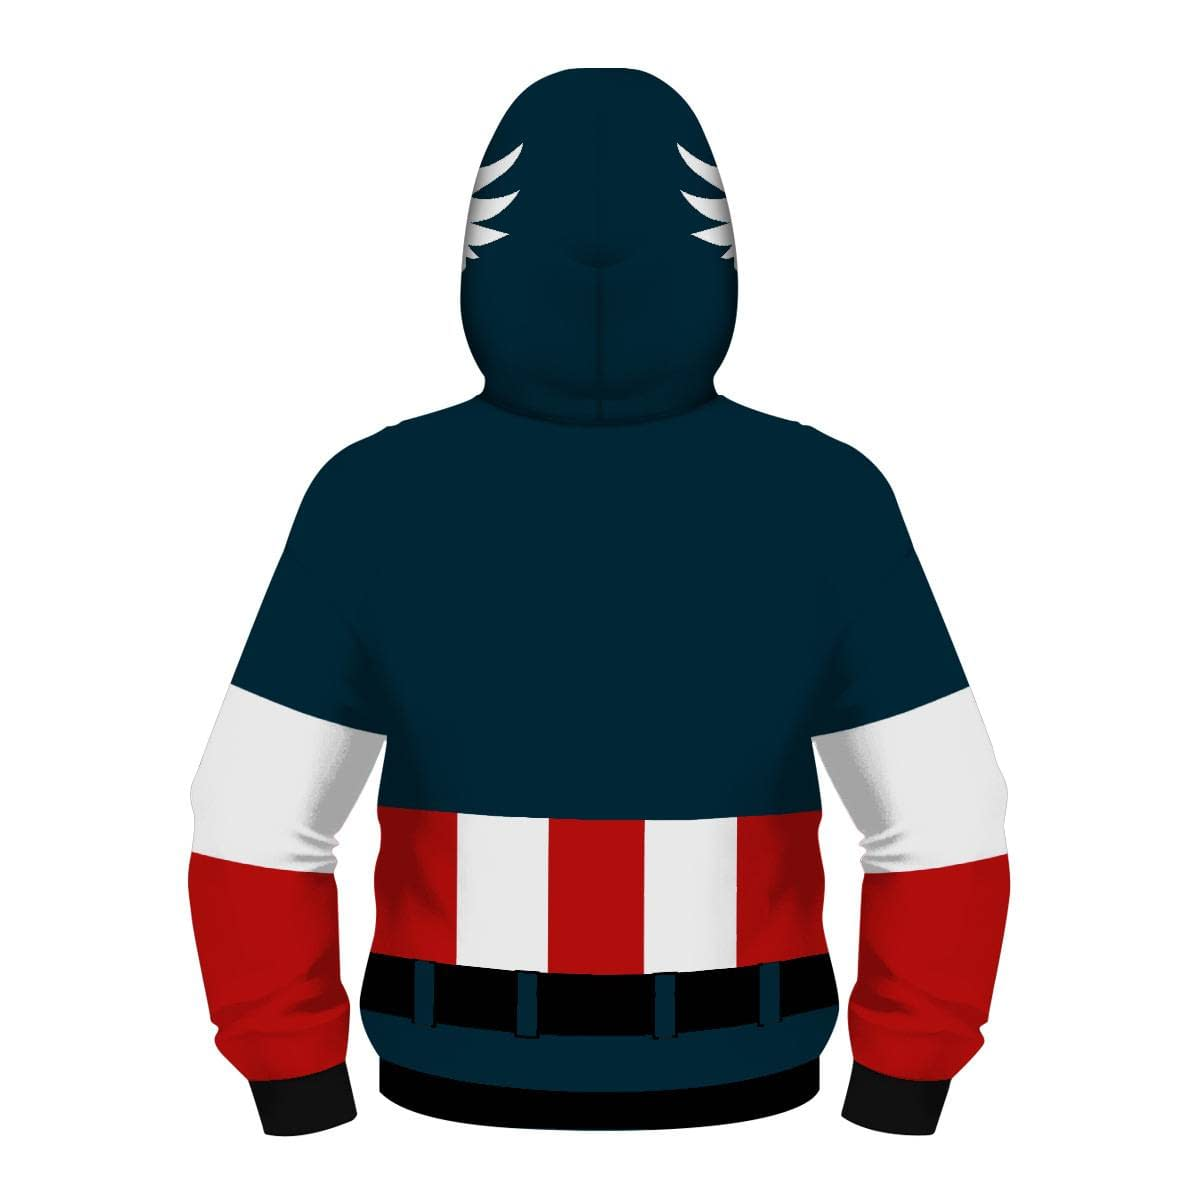 Fight Coronavirus Superhero Hooded Jacket with Mask (The Avengers, Captain America, Iron Man, Spiderman, Star Wars)